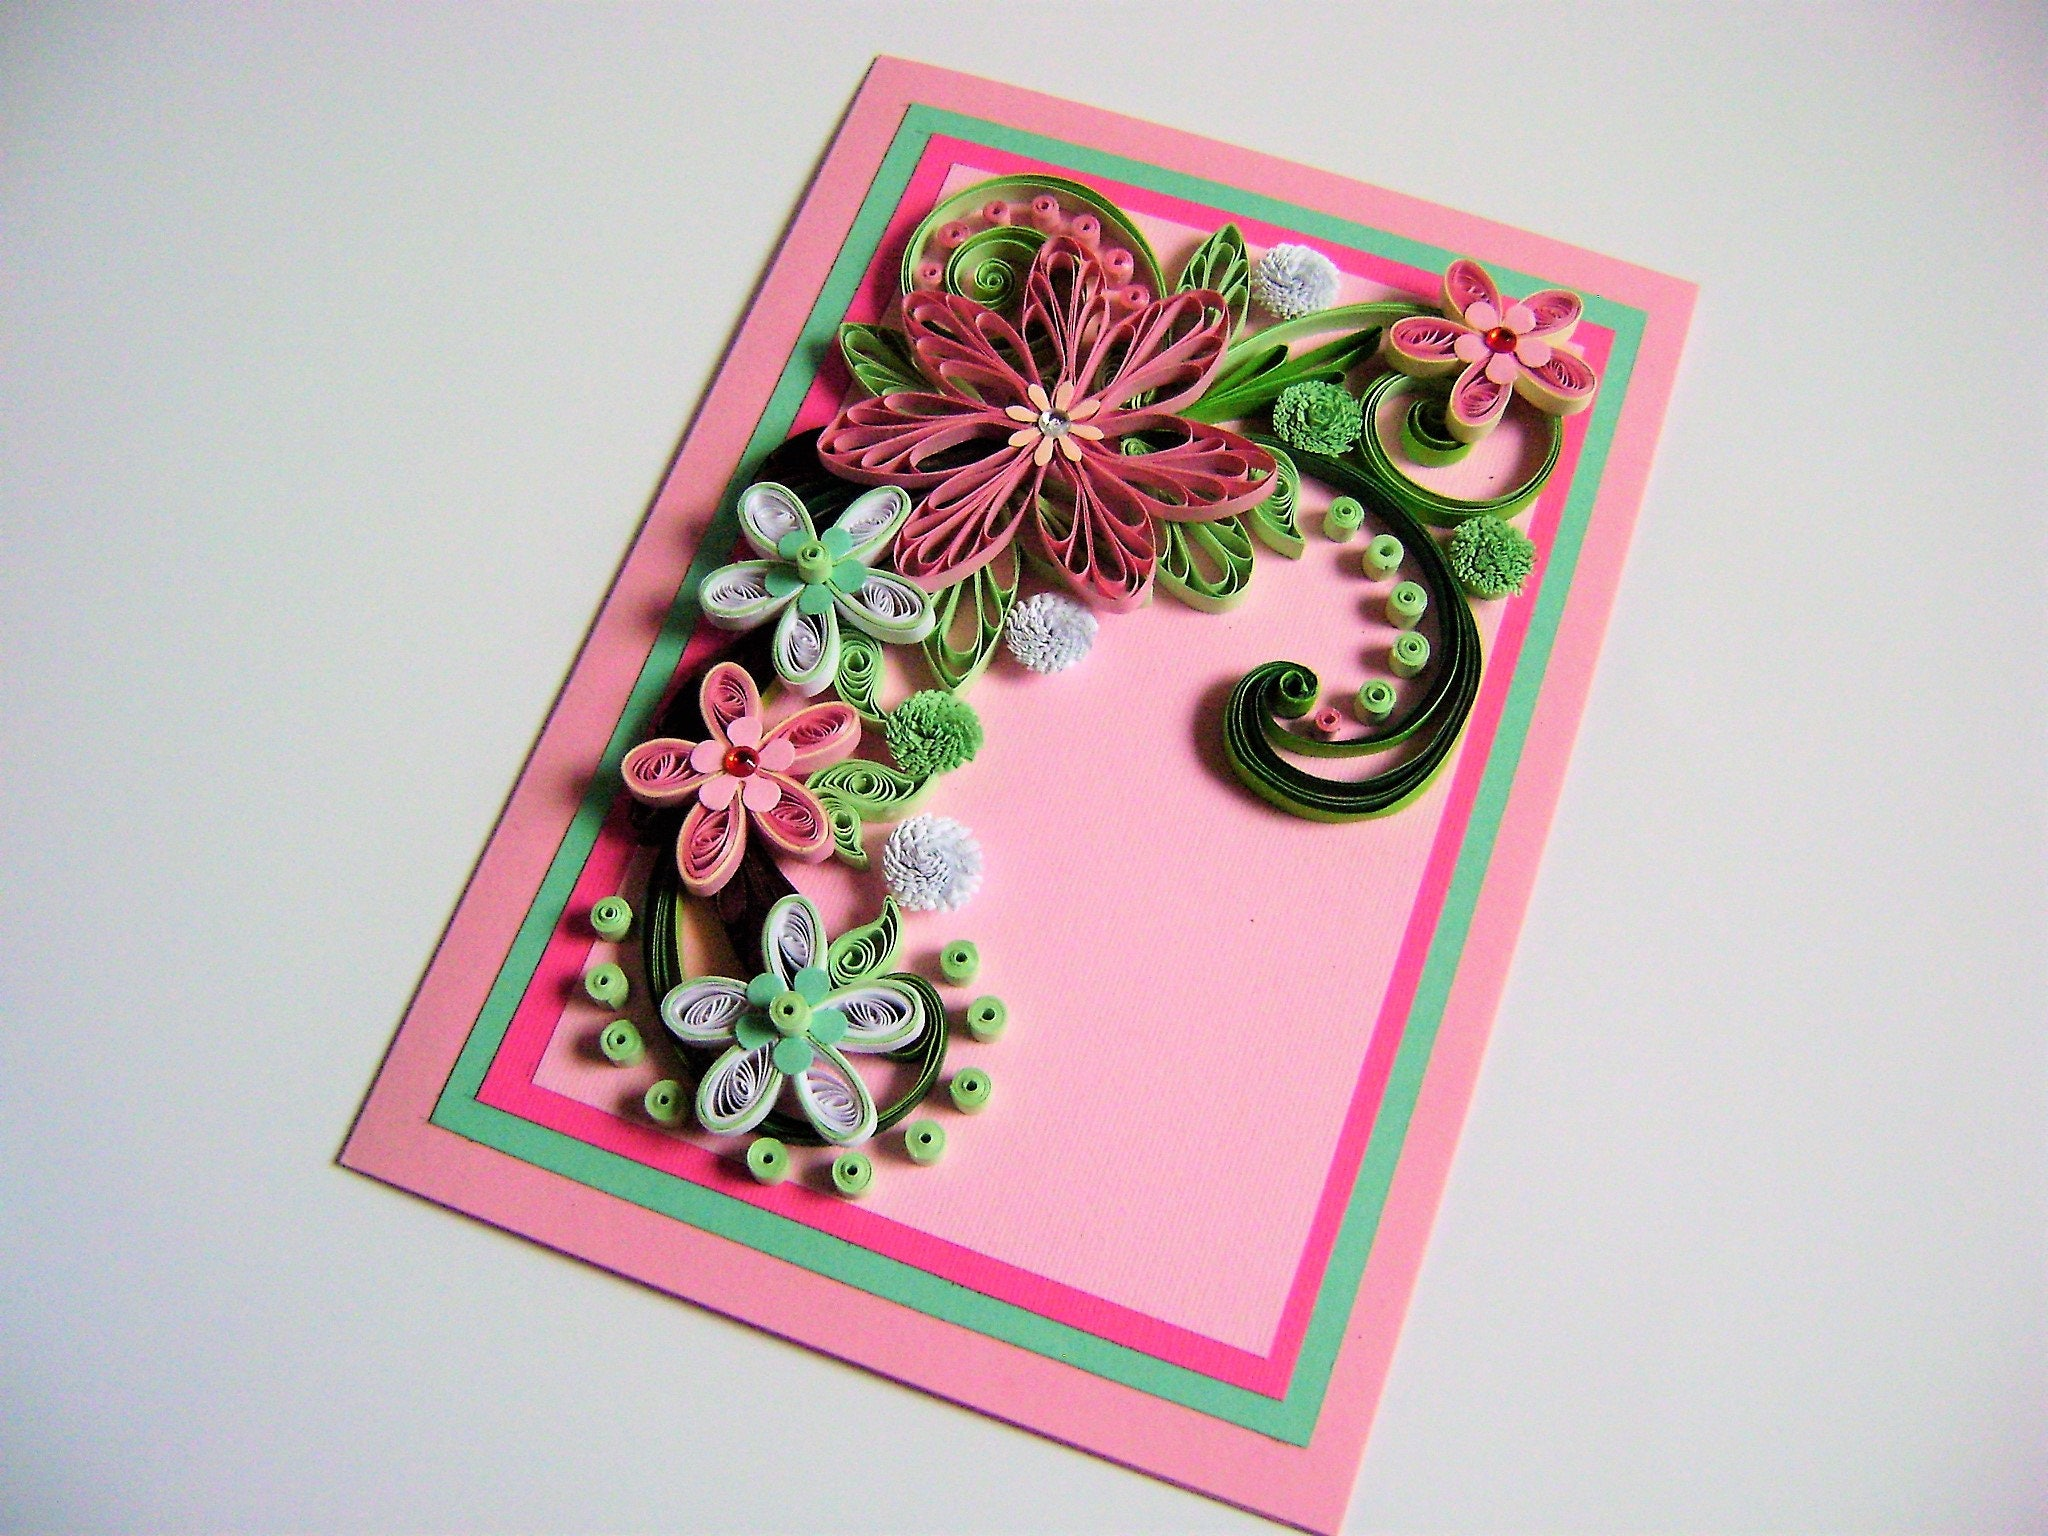 Flower wedding cardwedding invitation cardquilling greeting card flower wedding cardwedding invitation cardquilling greeting cardanniversary cardquilled stopboris Choice Image